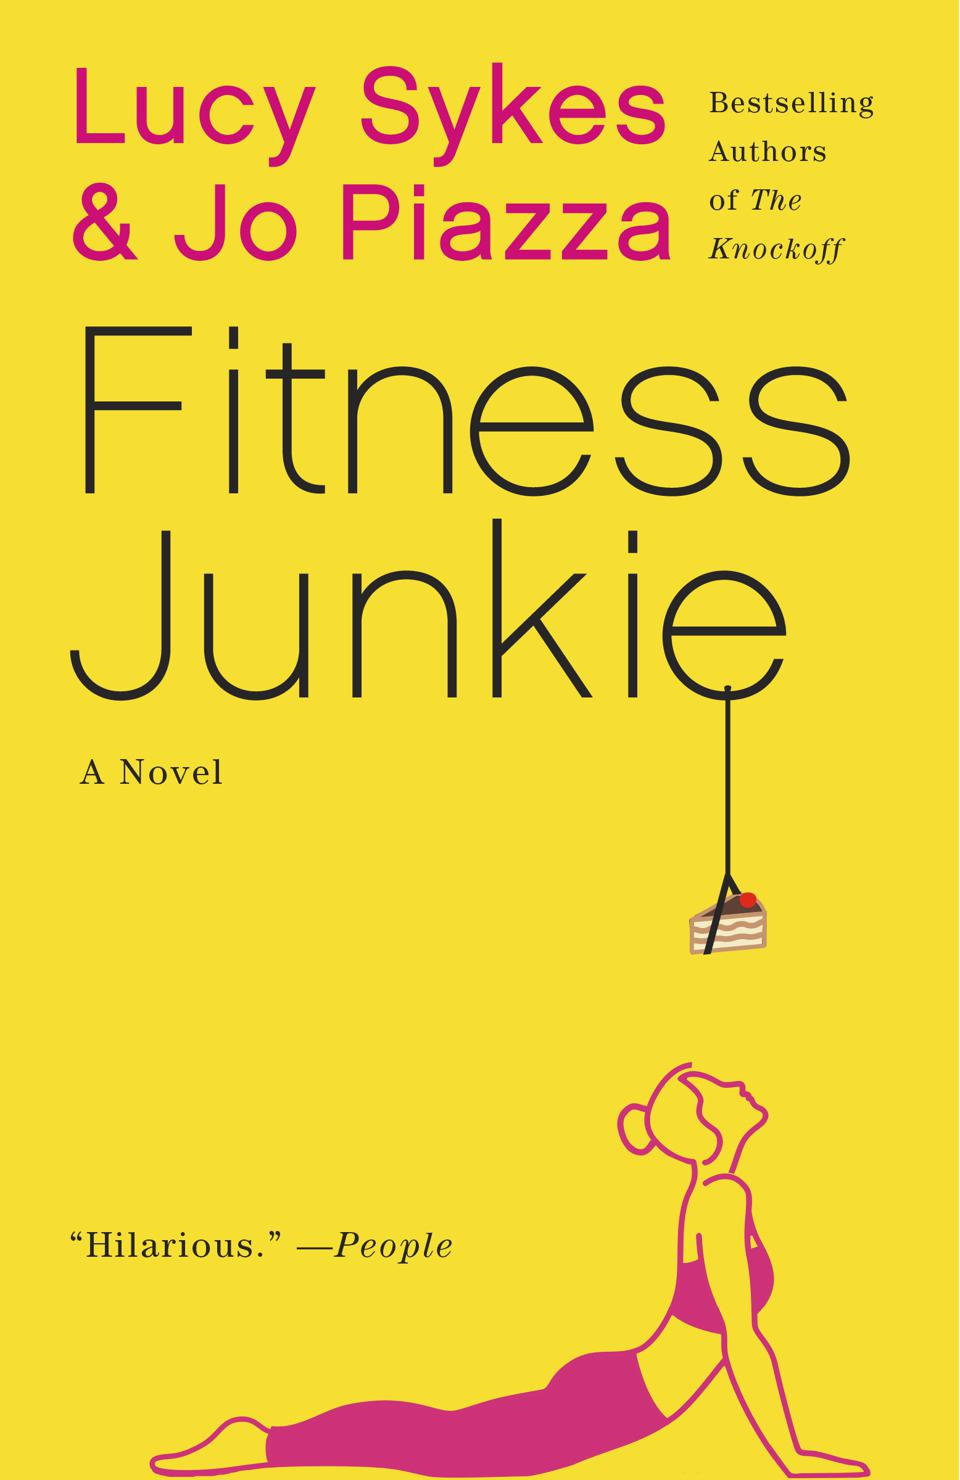 fitness junkie paperback book cover lucy sykes jo piazza novel fiction emily mahon